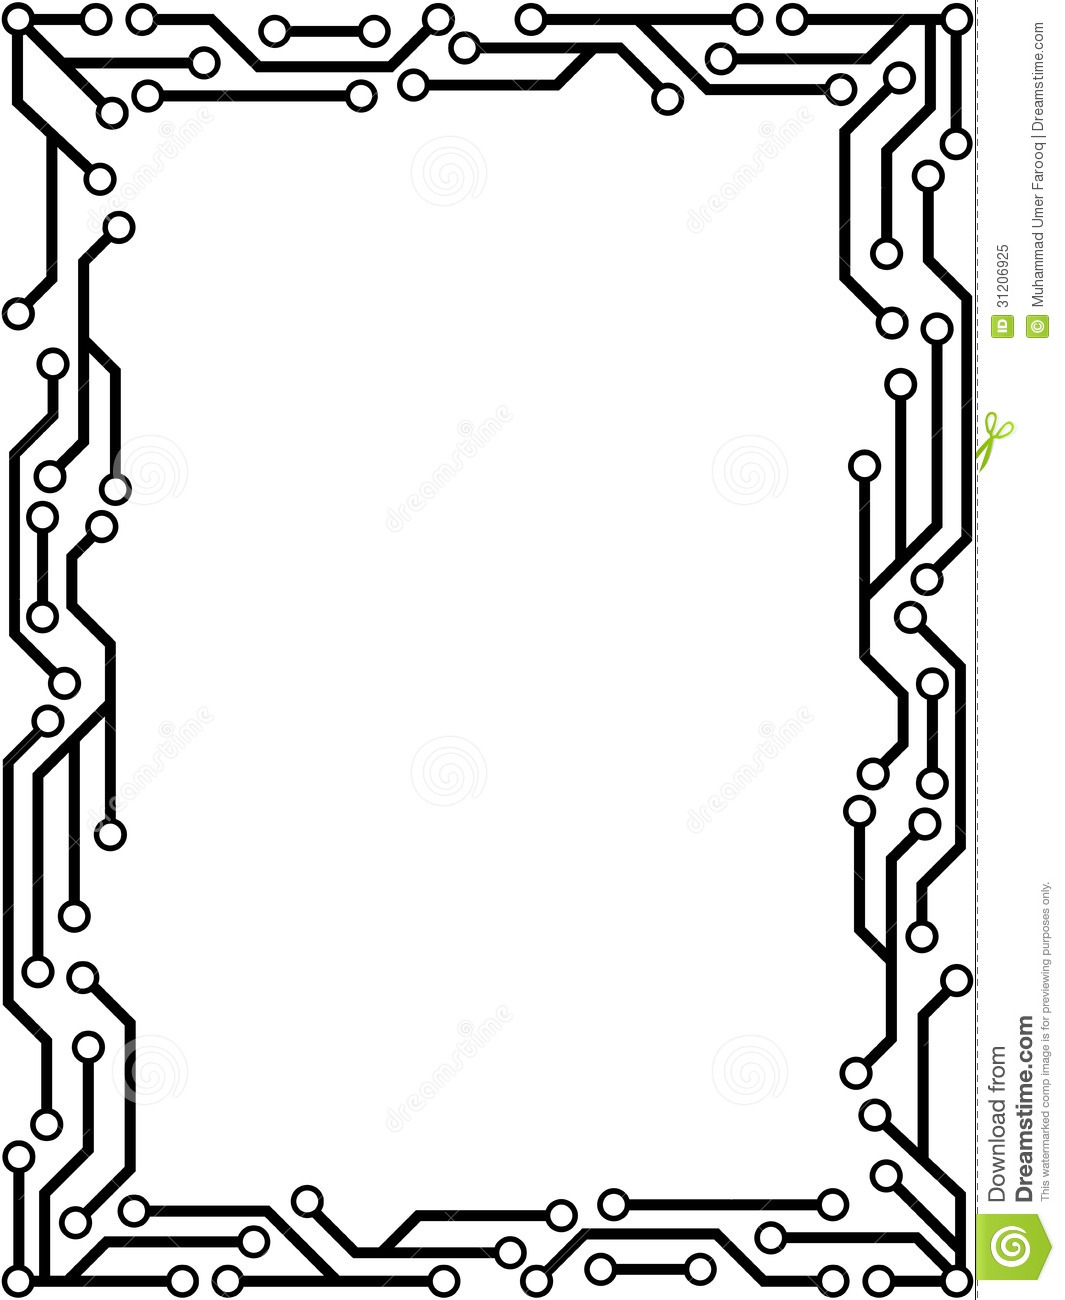 Circuit Frame Stock Vector Illustration Of Tech Digital